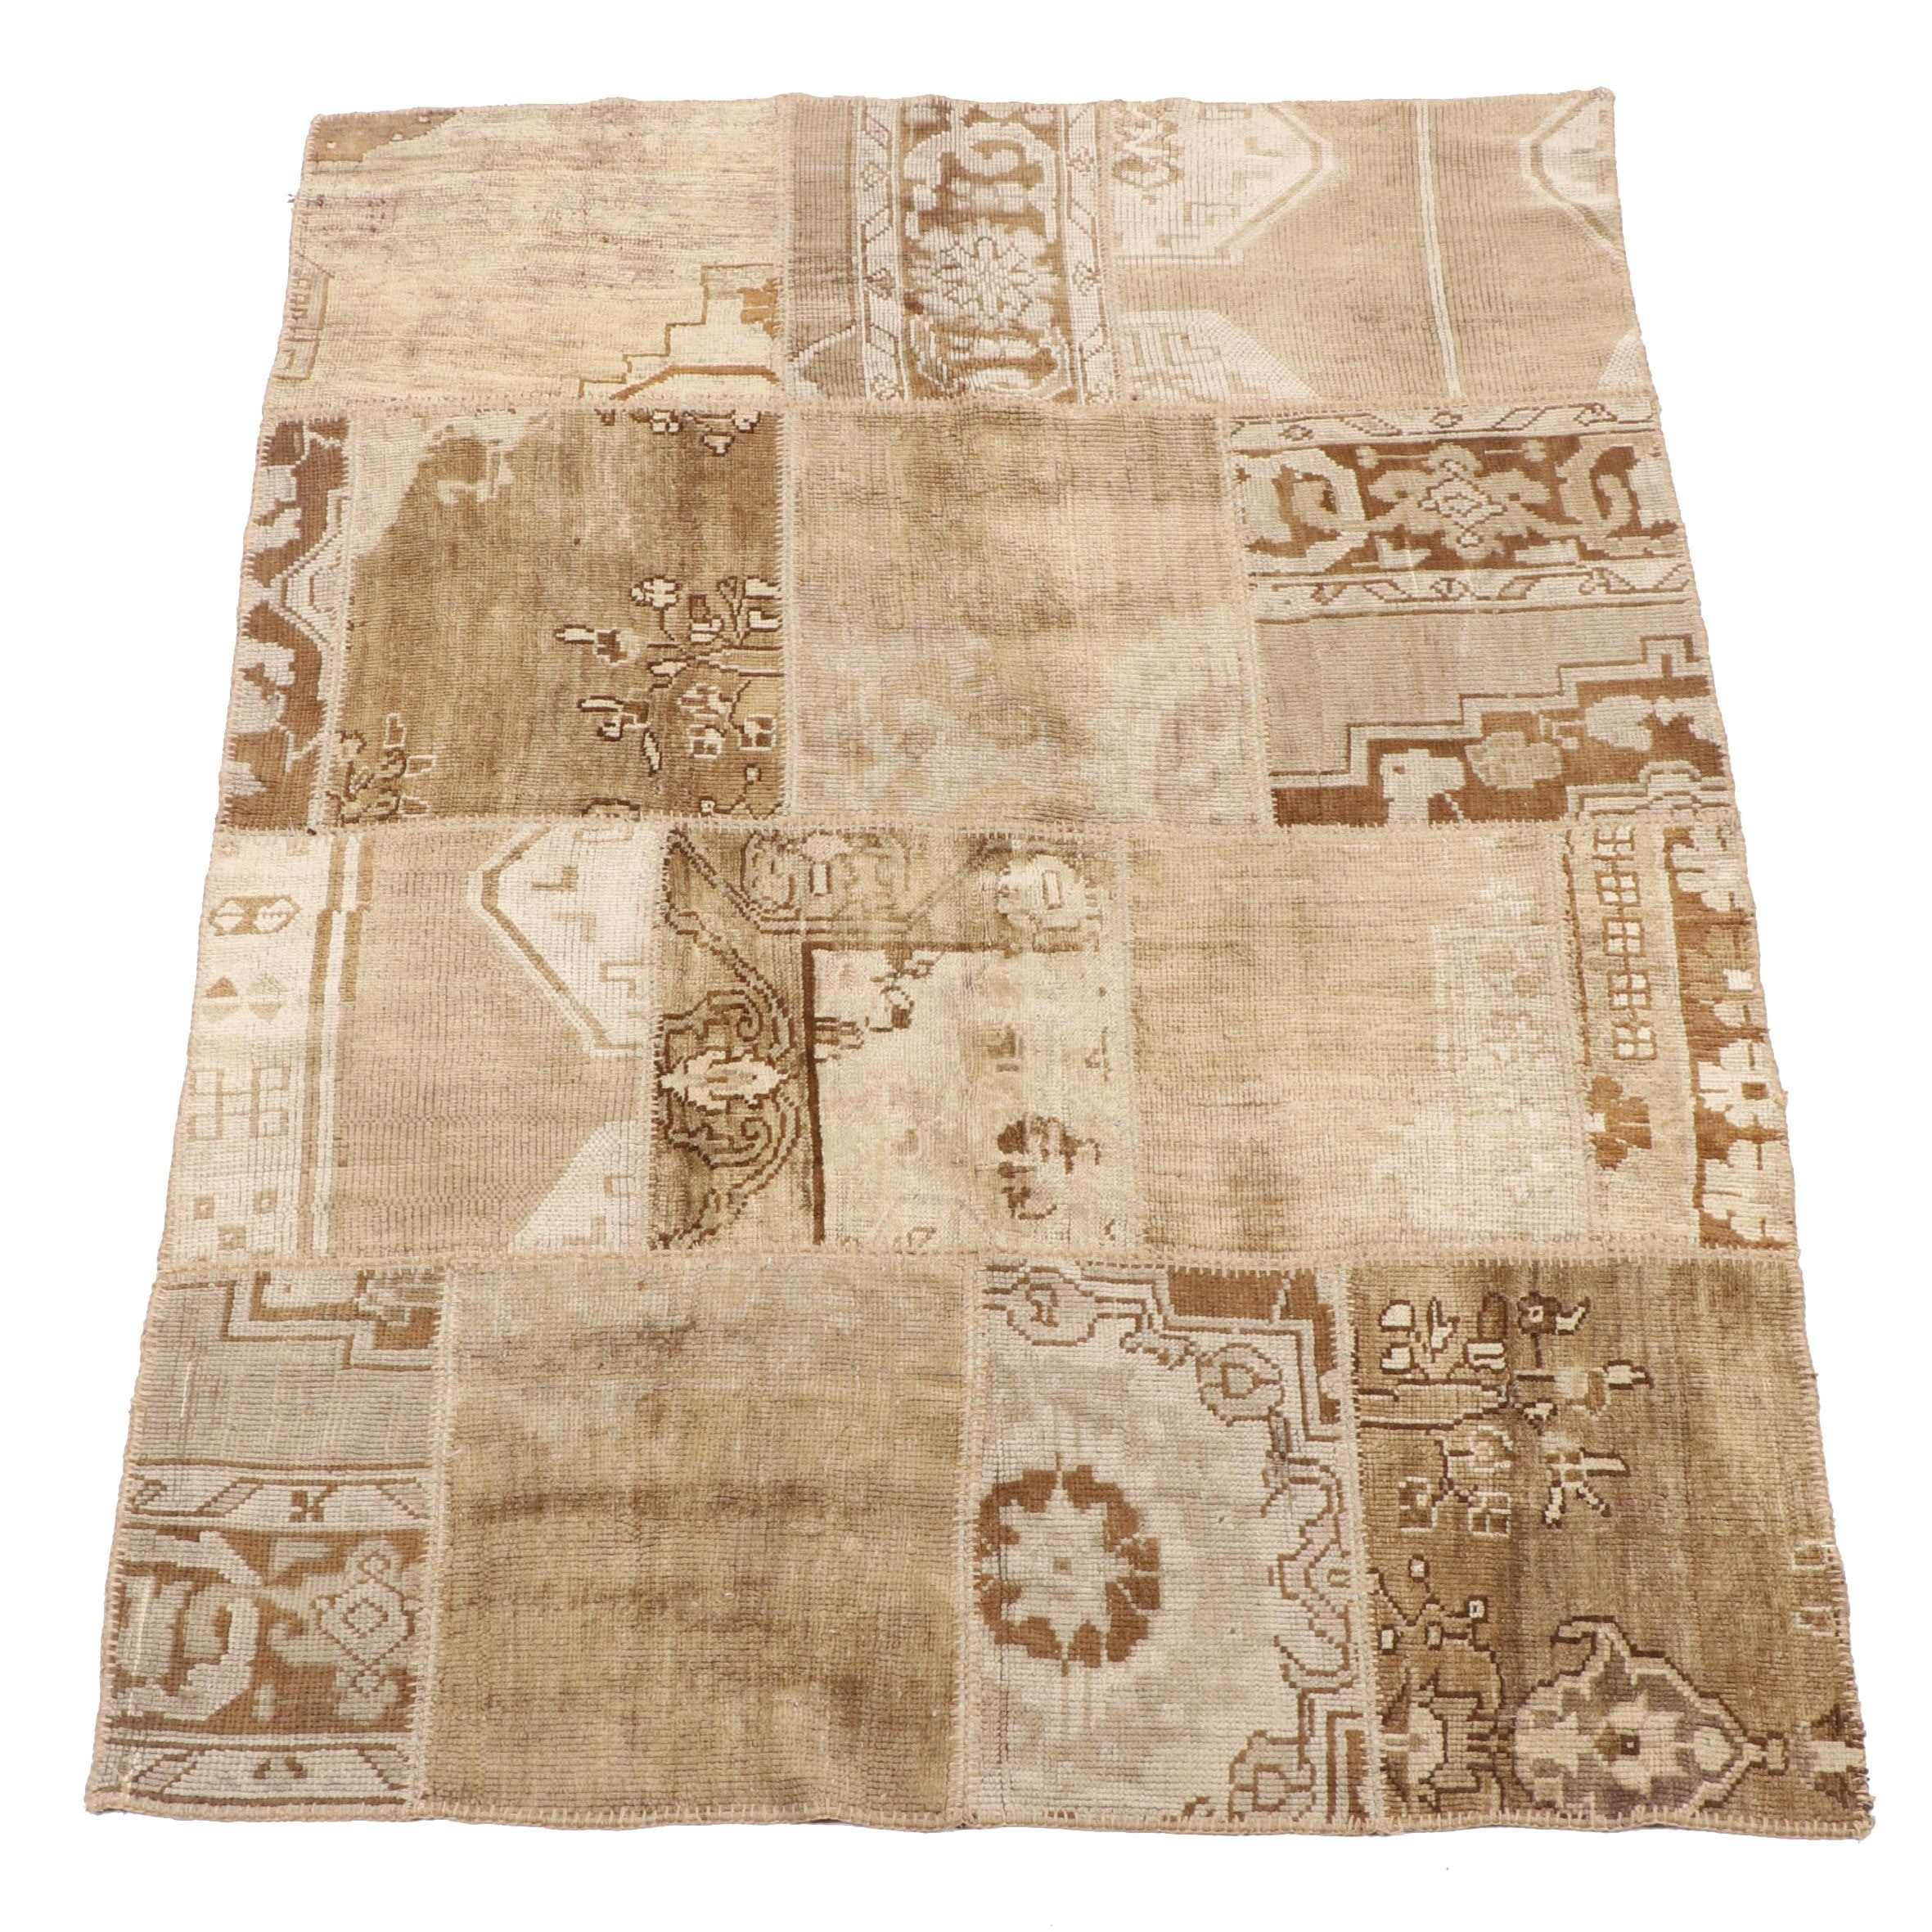 Hand-Knotted Turkish Patchwork Mosaic Pattern Wool Rug from Oscar Isberian